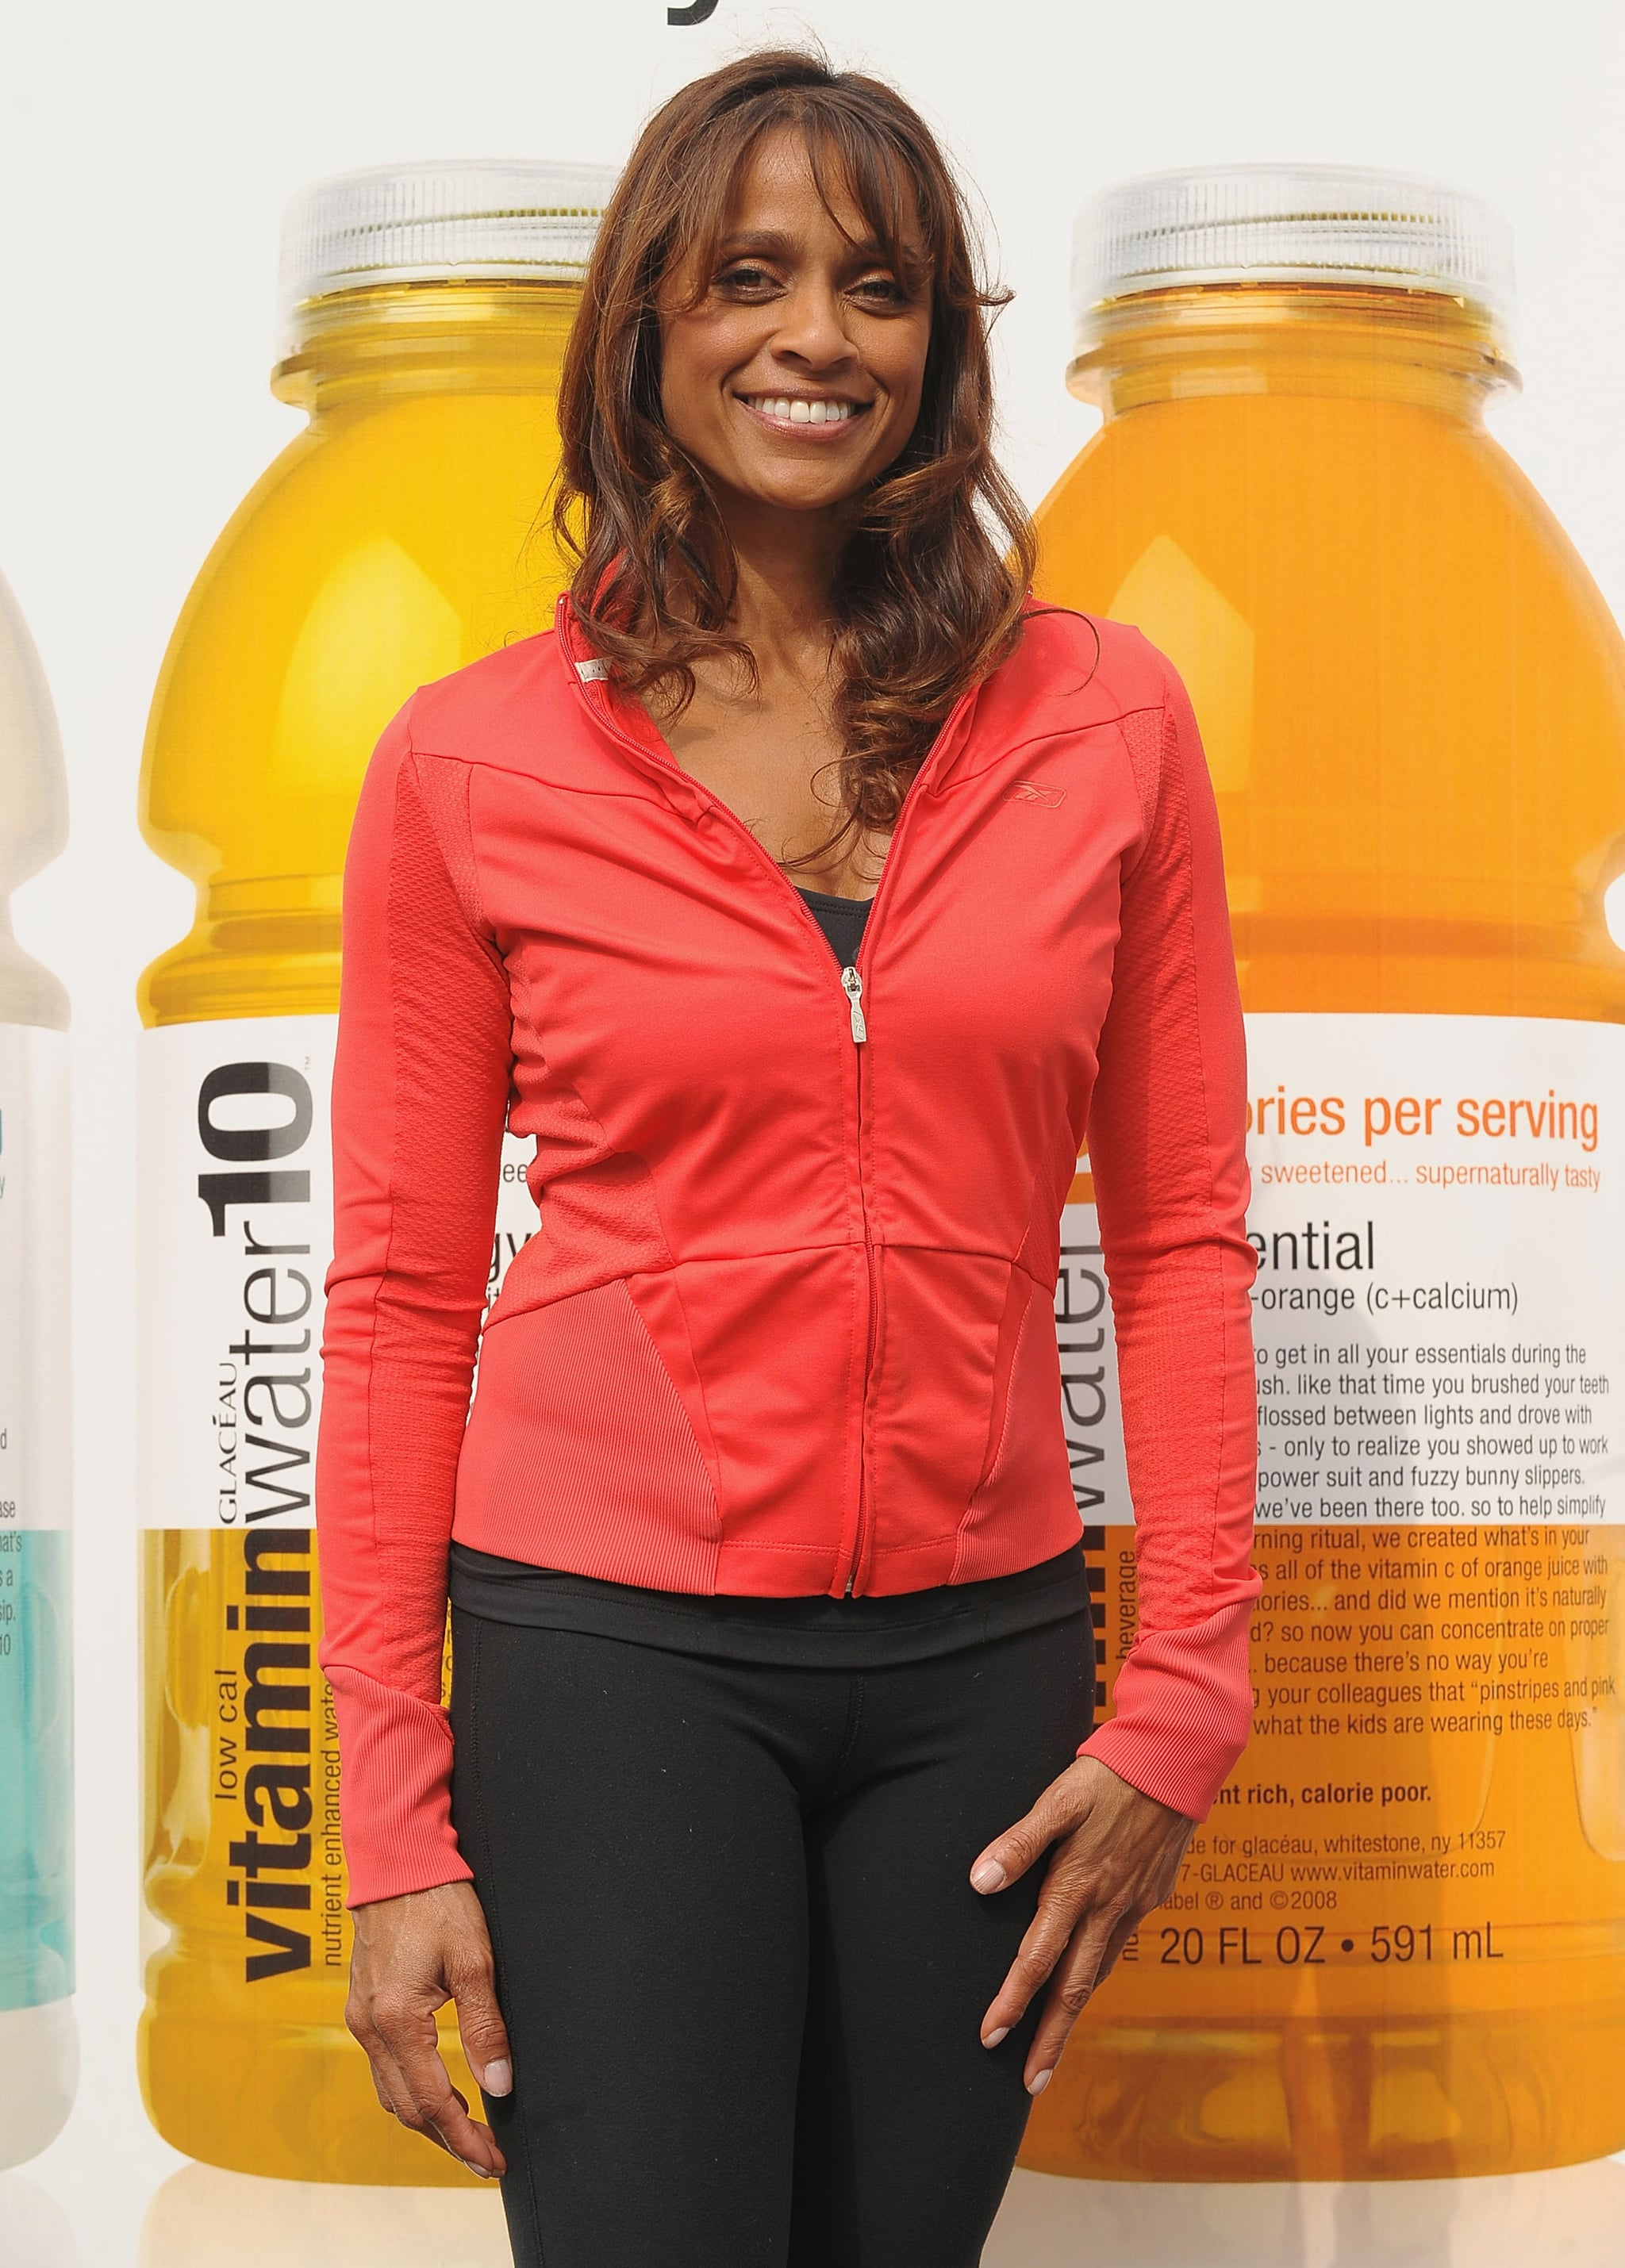 Fitness trainer Ramona Braganza attends the low calorie Vitaminwater10 launch at Vitaminwater10 Gym on April 2, 2009 in New York City. (Photo by Dimitrios Kambouris/WireImage)